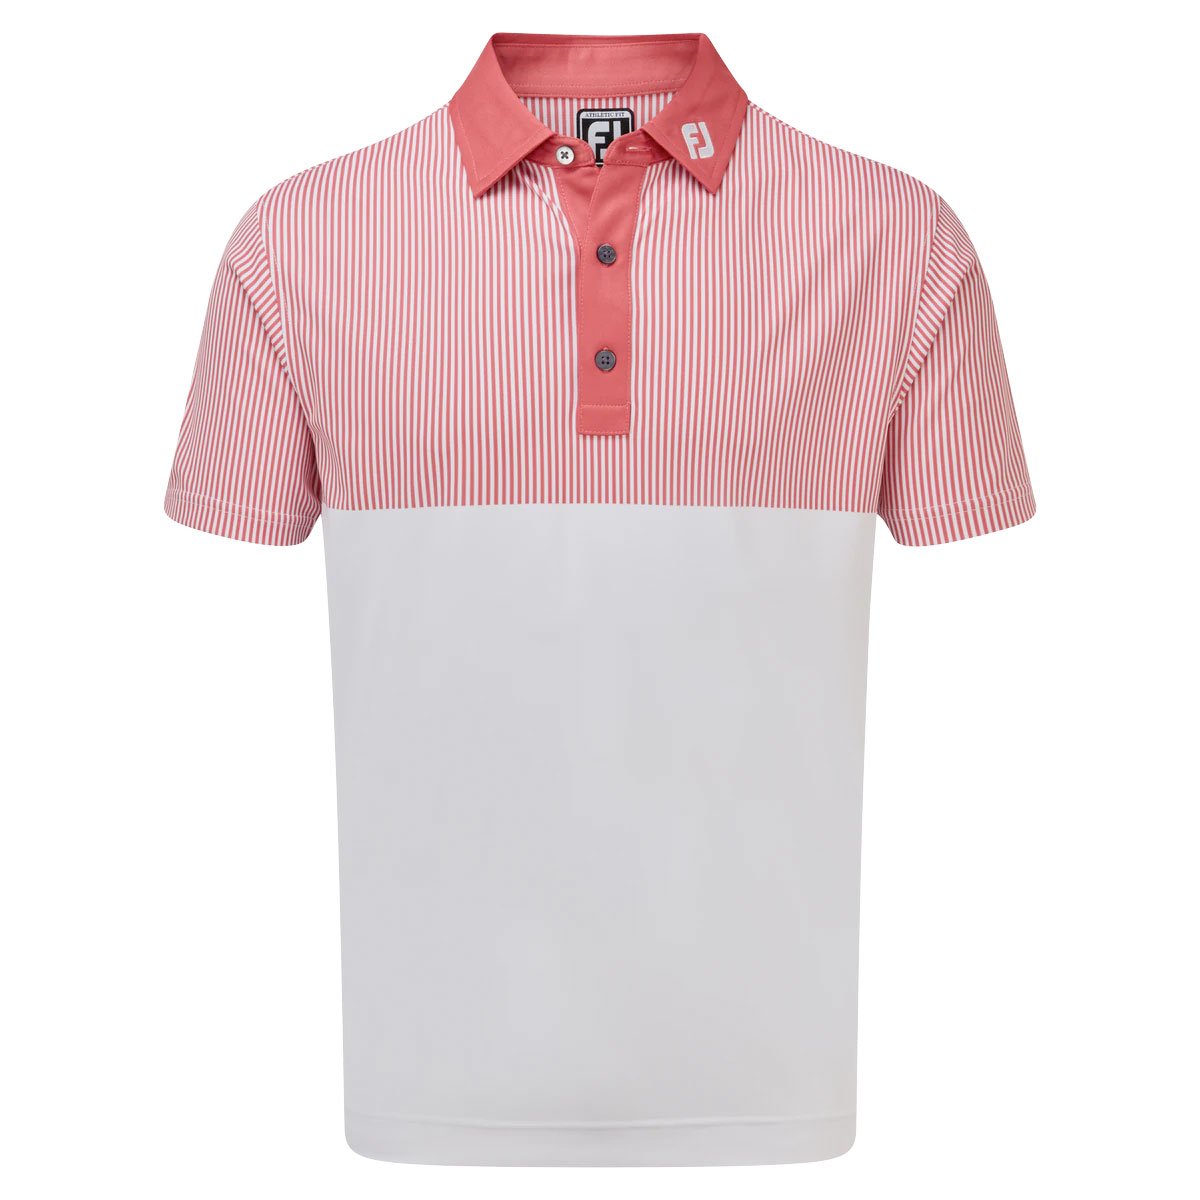 FootJoy Smooth Pique Engineered Vertical Print Mens Golf Polo Shirt  - White/Cape Red